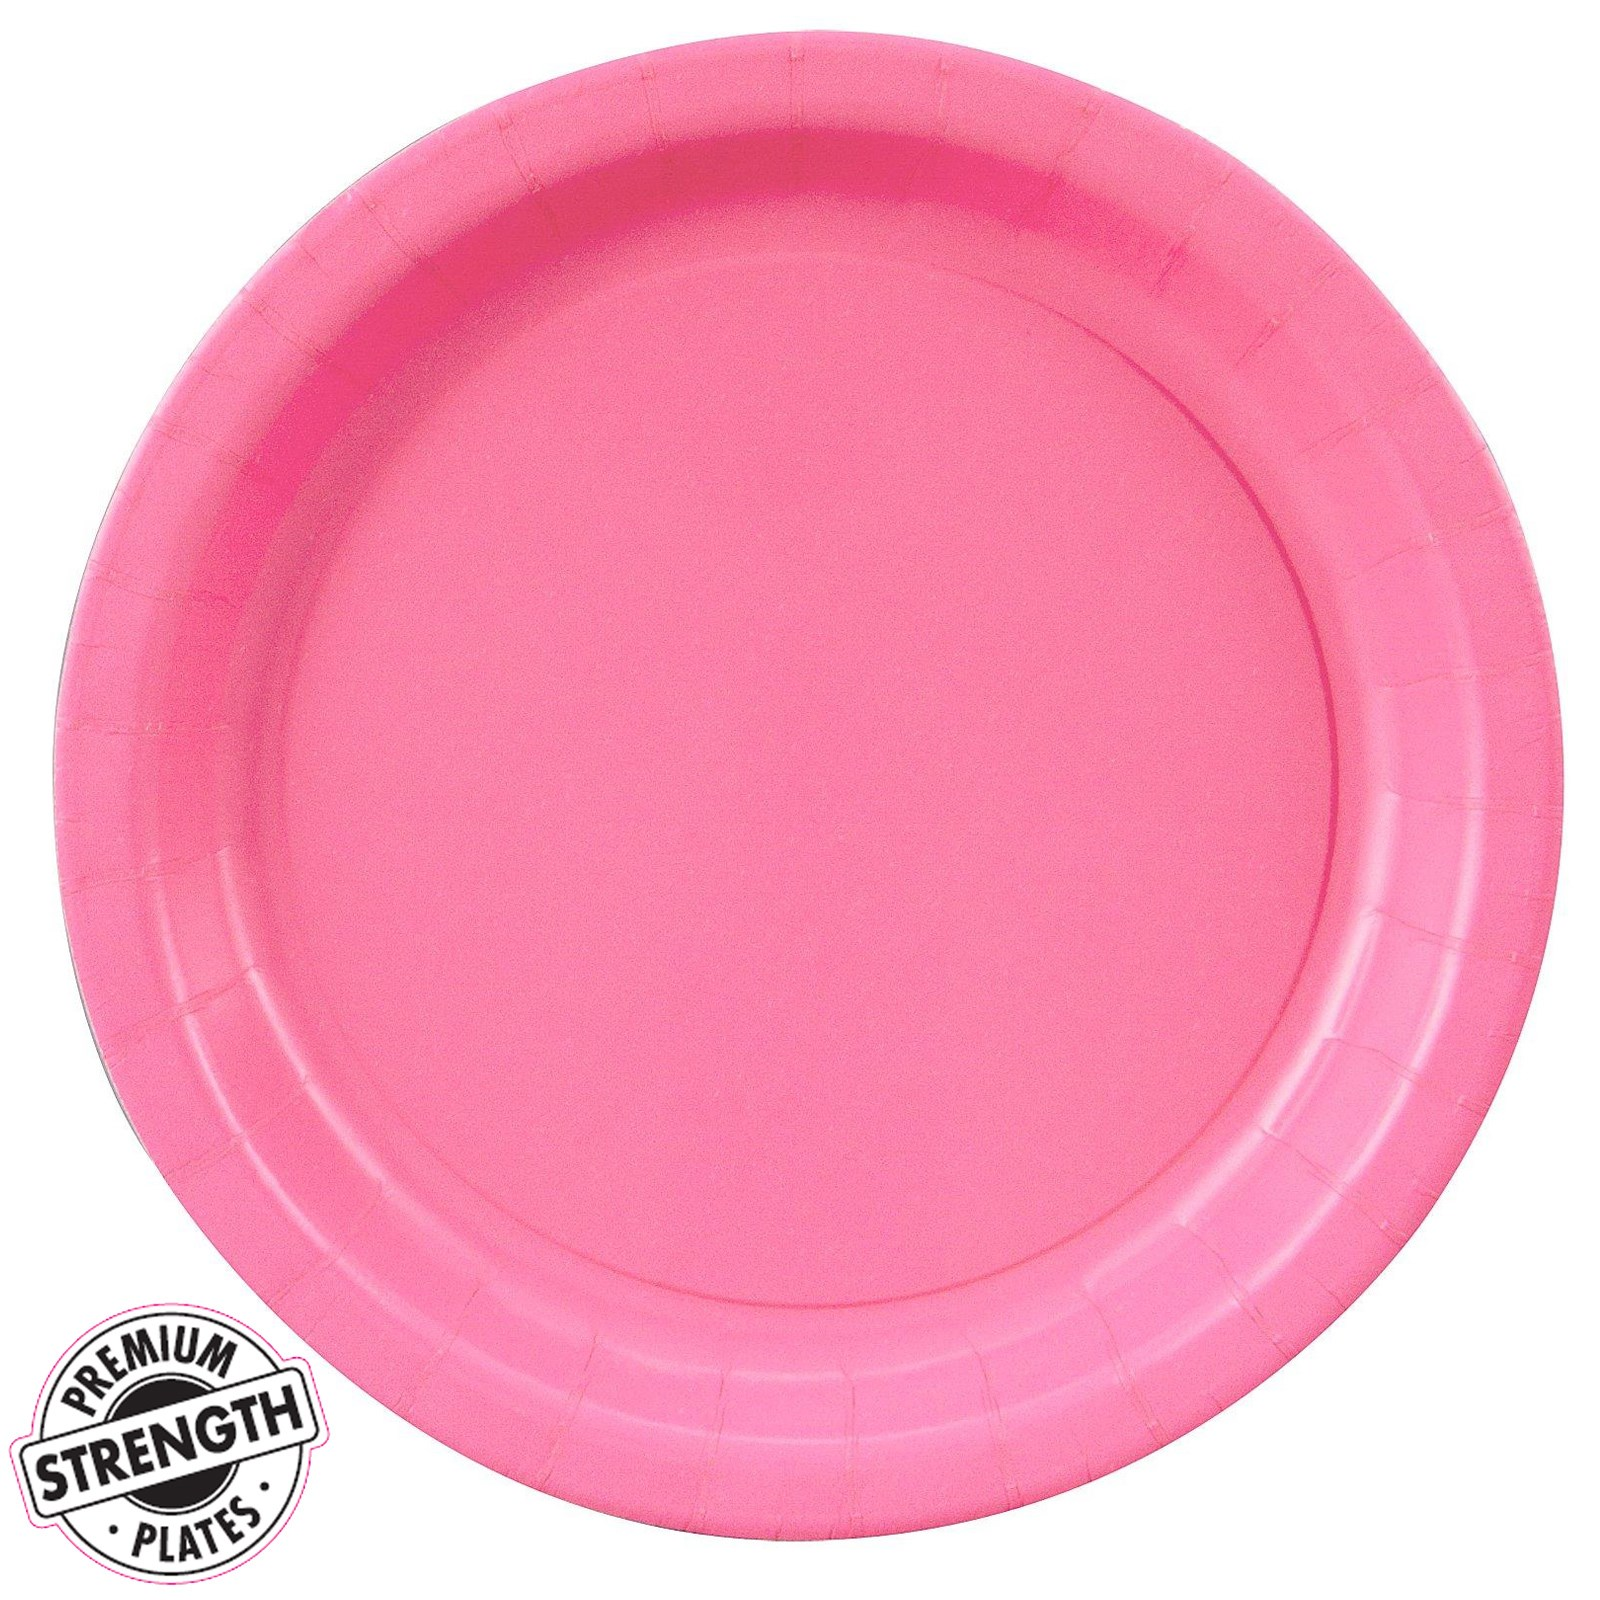 candy pink hot pink dinner plates 24 count. Black Bedroom Furniture Sets. Home Design Ideas